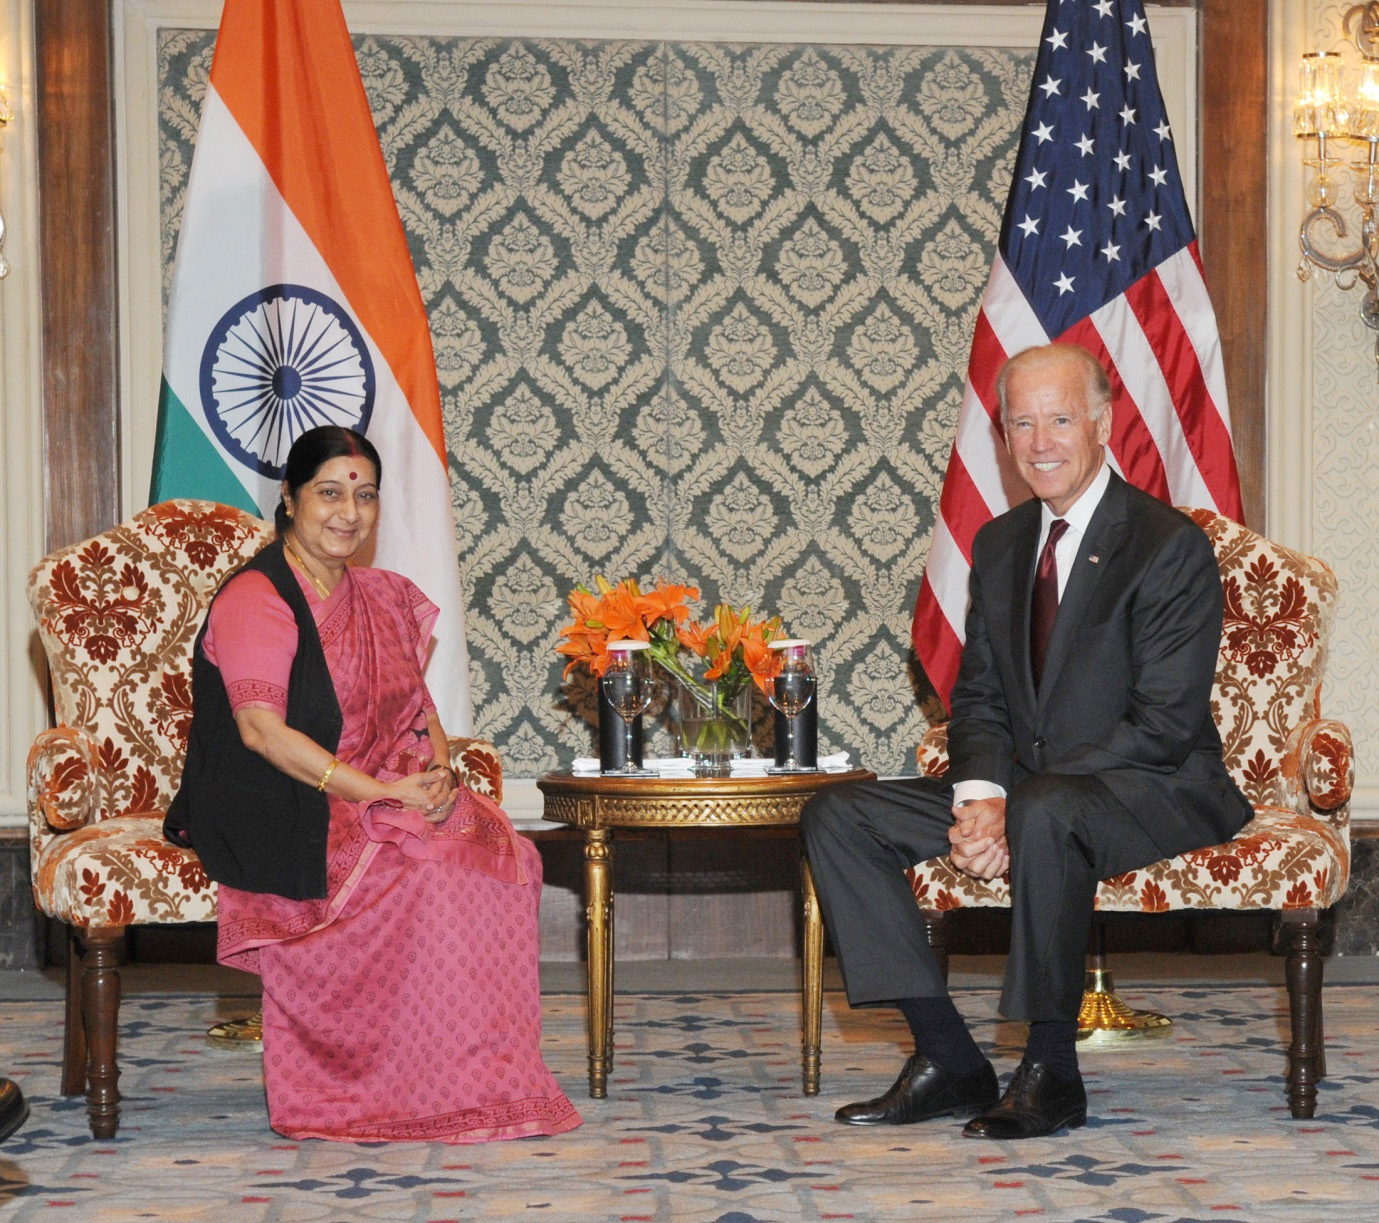 images/India_US_Ph2.jpg